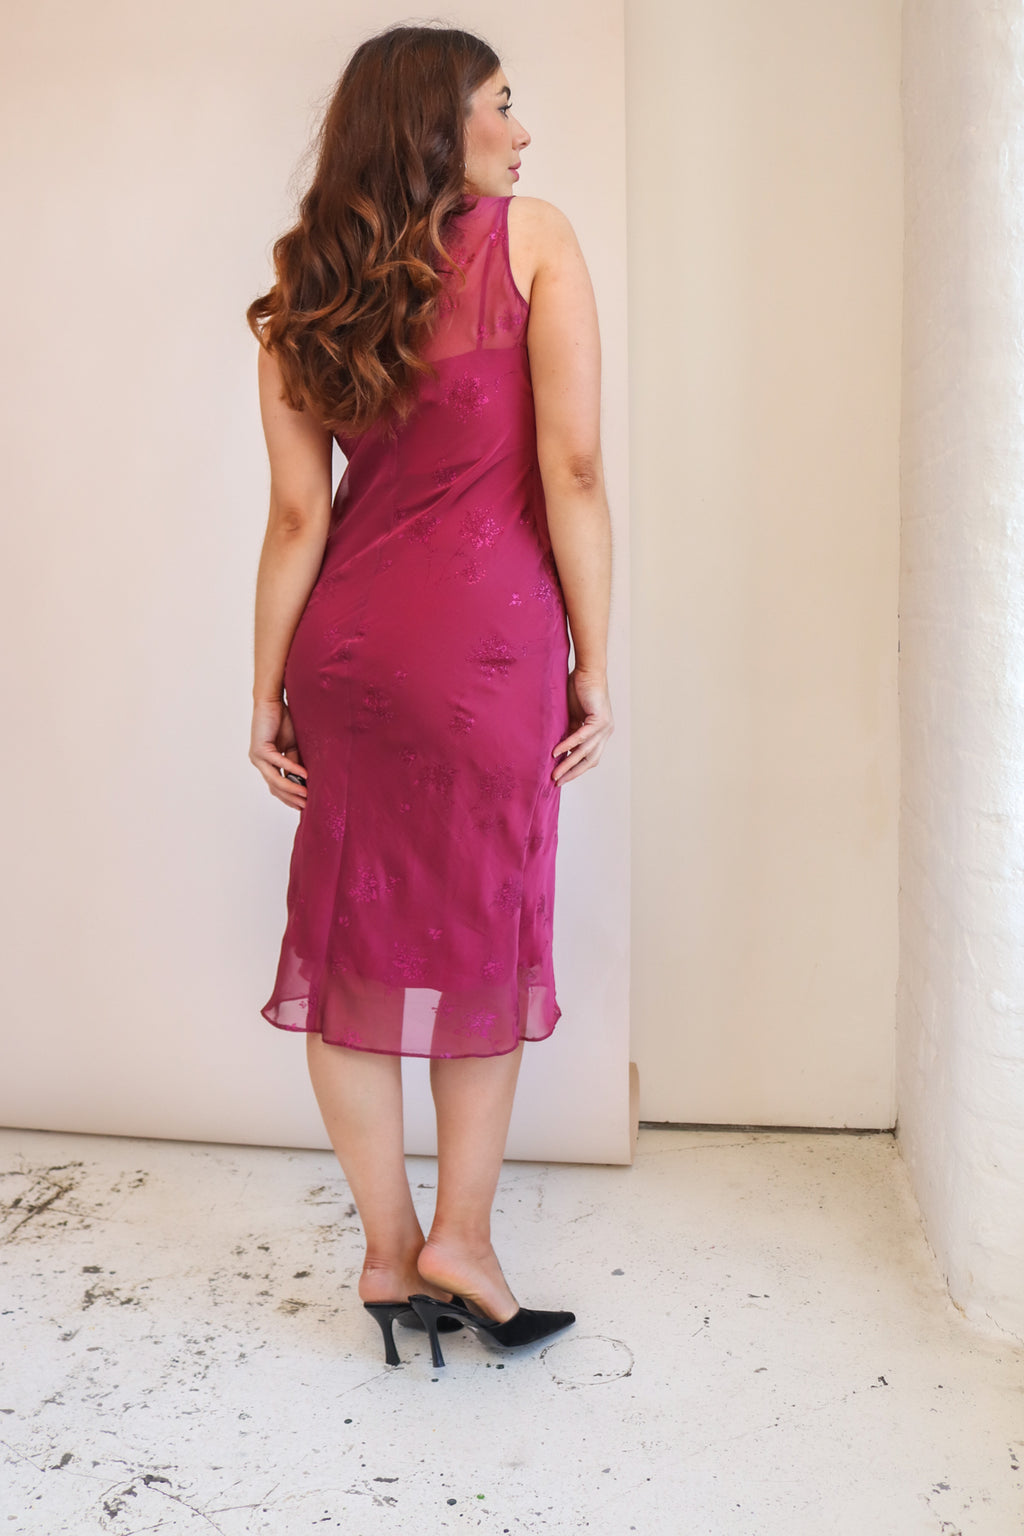 VintageSequin Blouse in Zebra Print - Dirty Disco